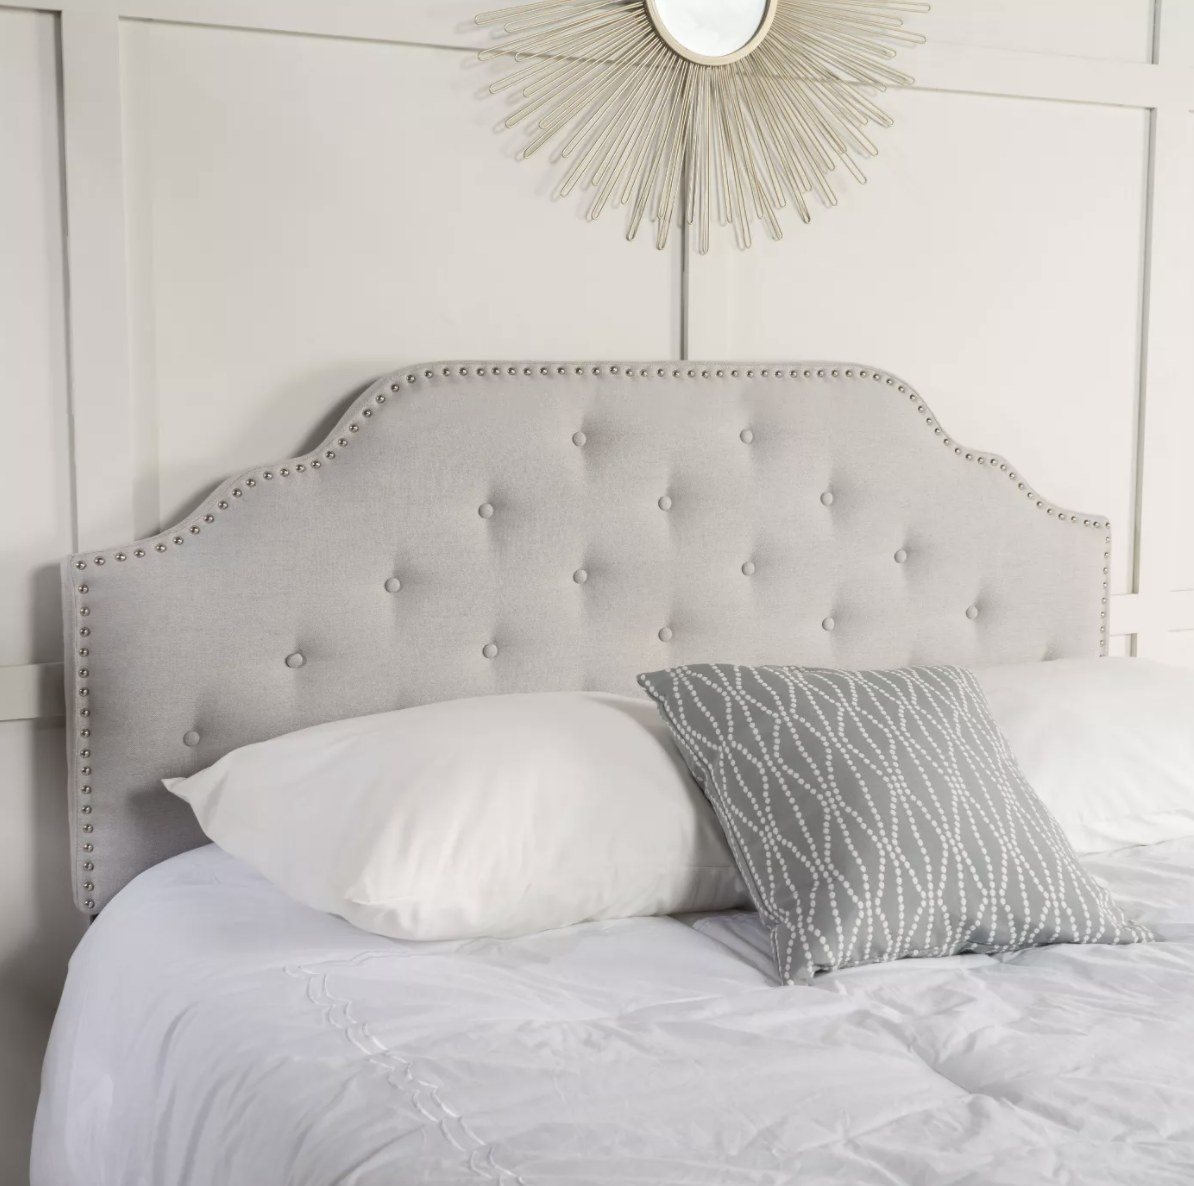 a gray headboard with studded detailing behind a bed with two white pillows, a gray throw pillow, and a white comforter